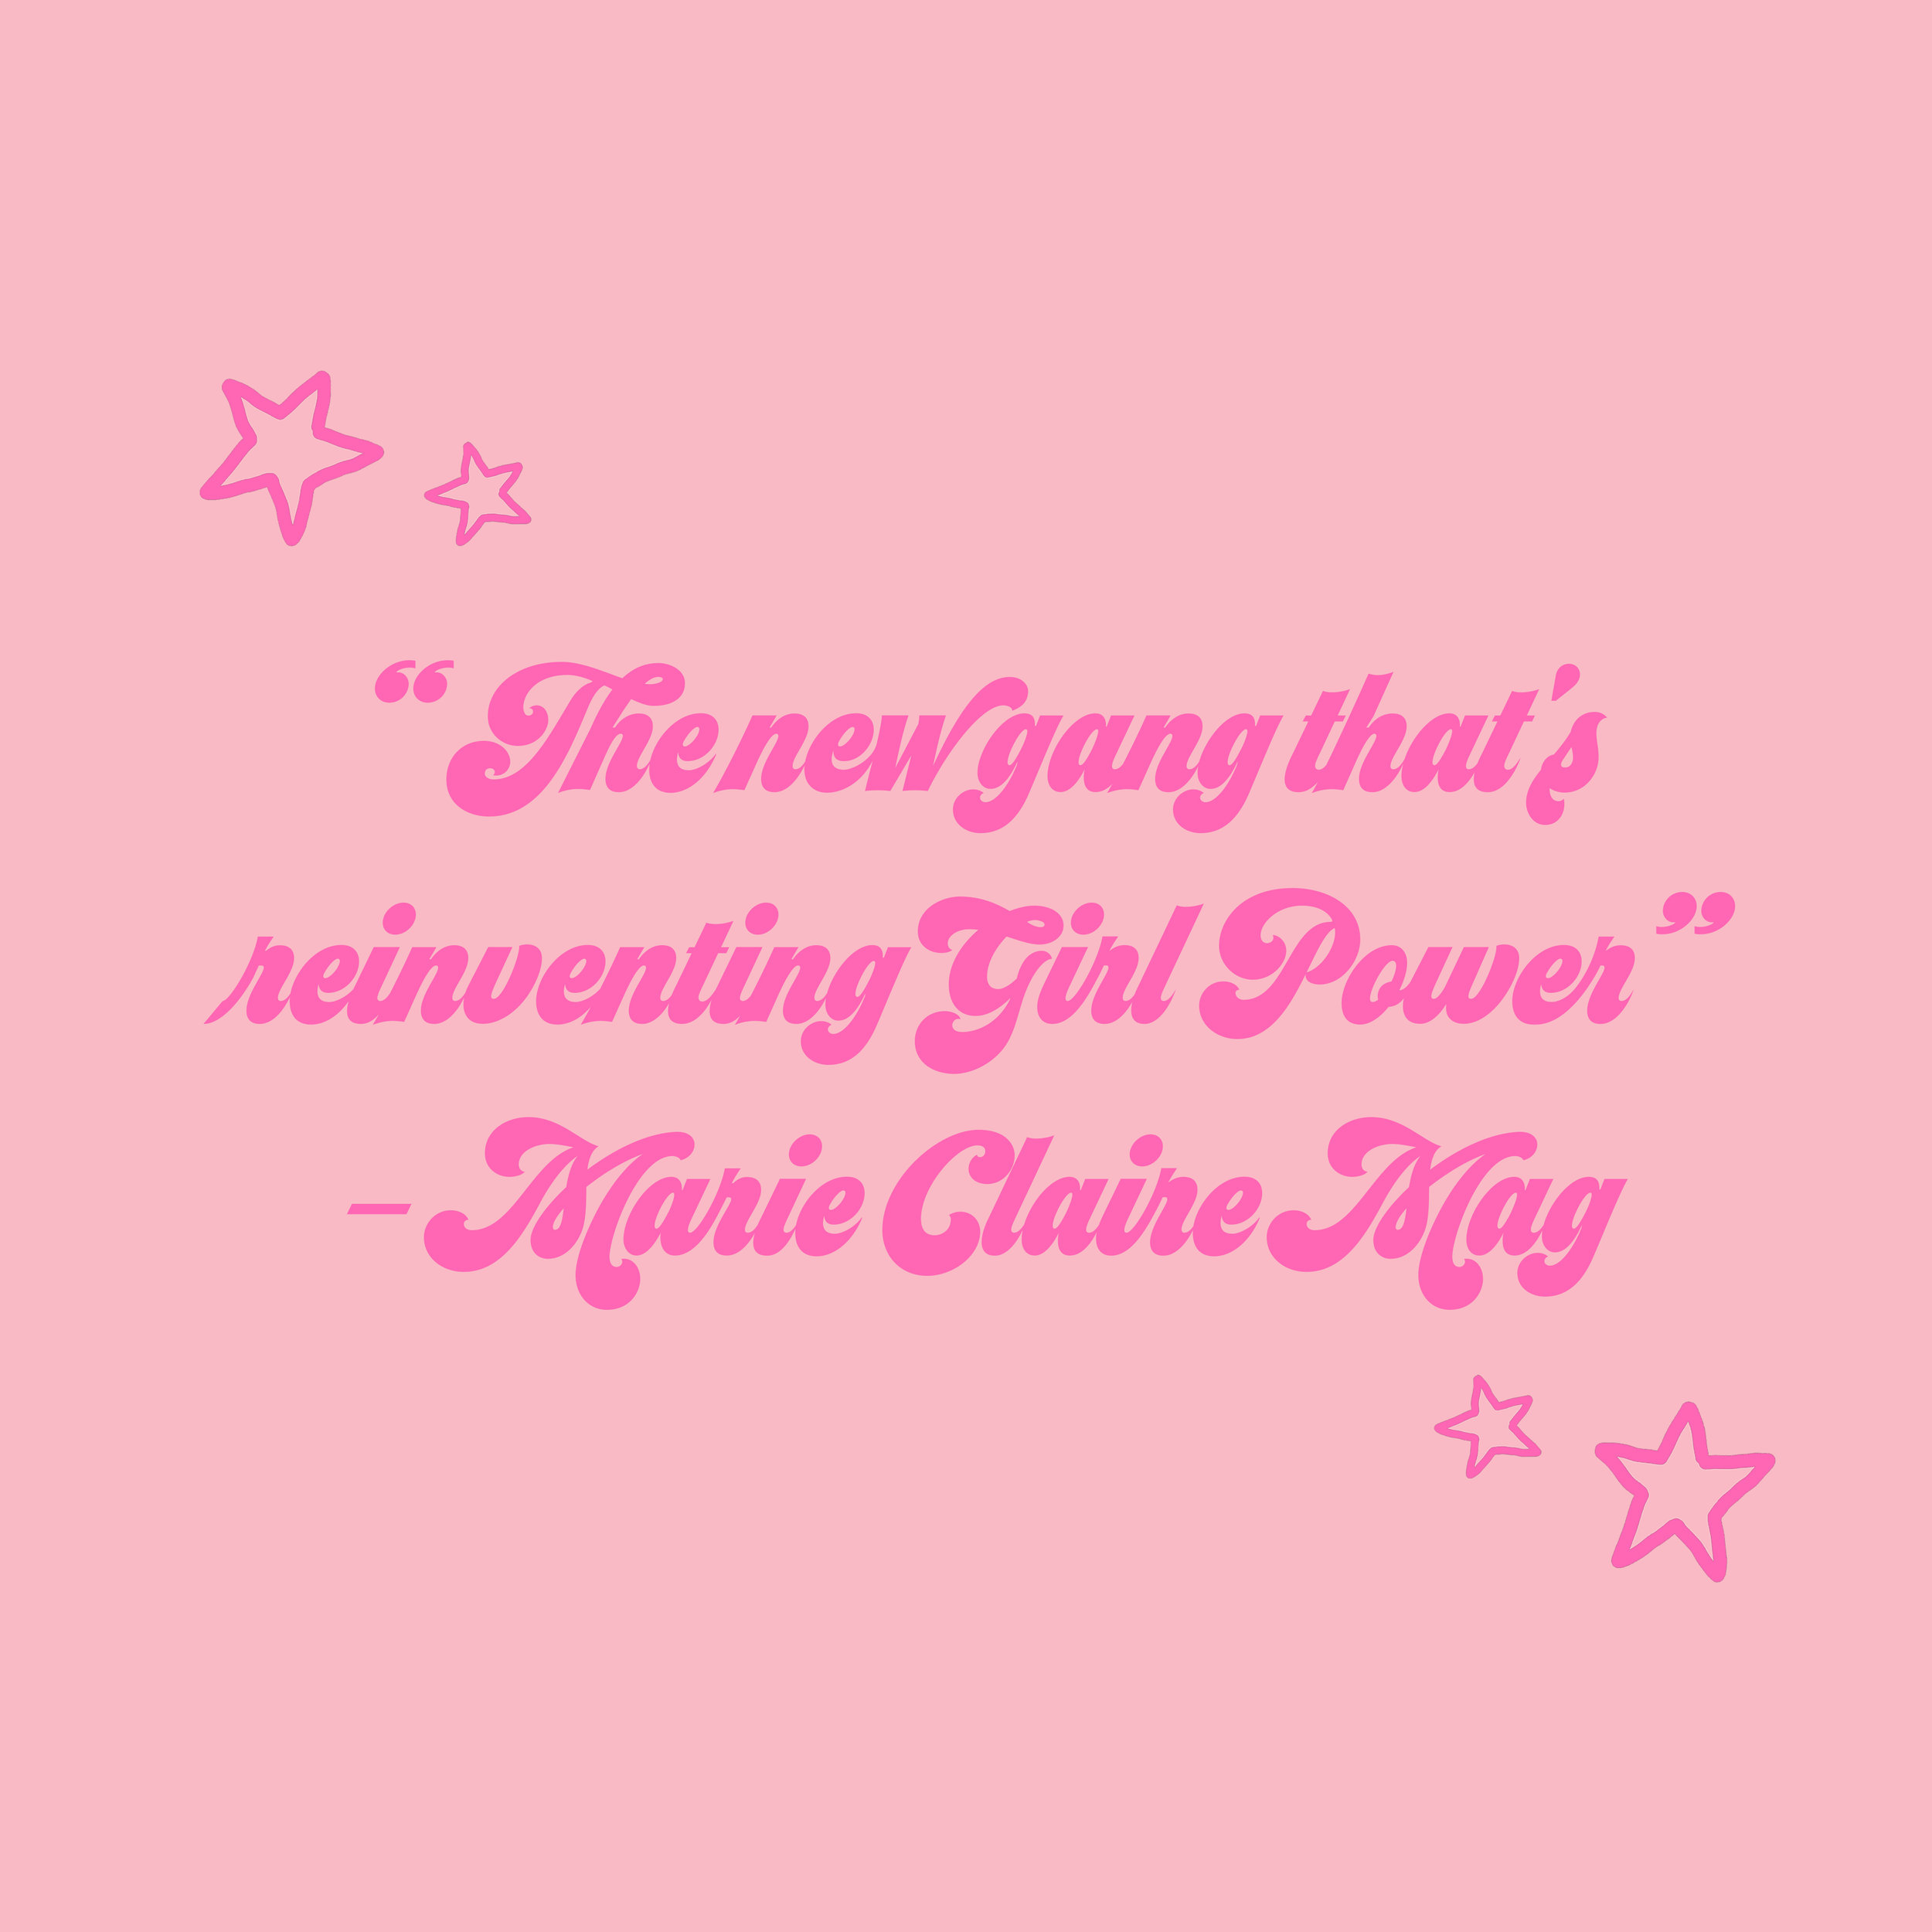 MARIE CLAIRE PRESS QUOTE PINK.jpg